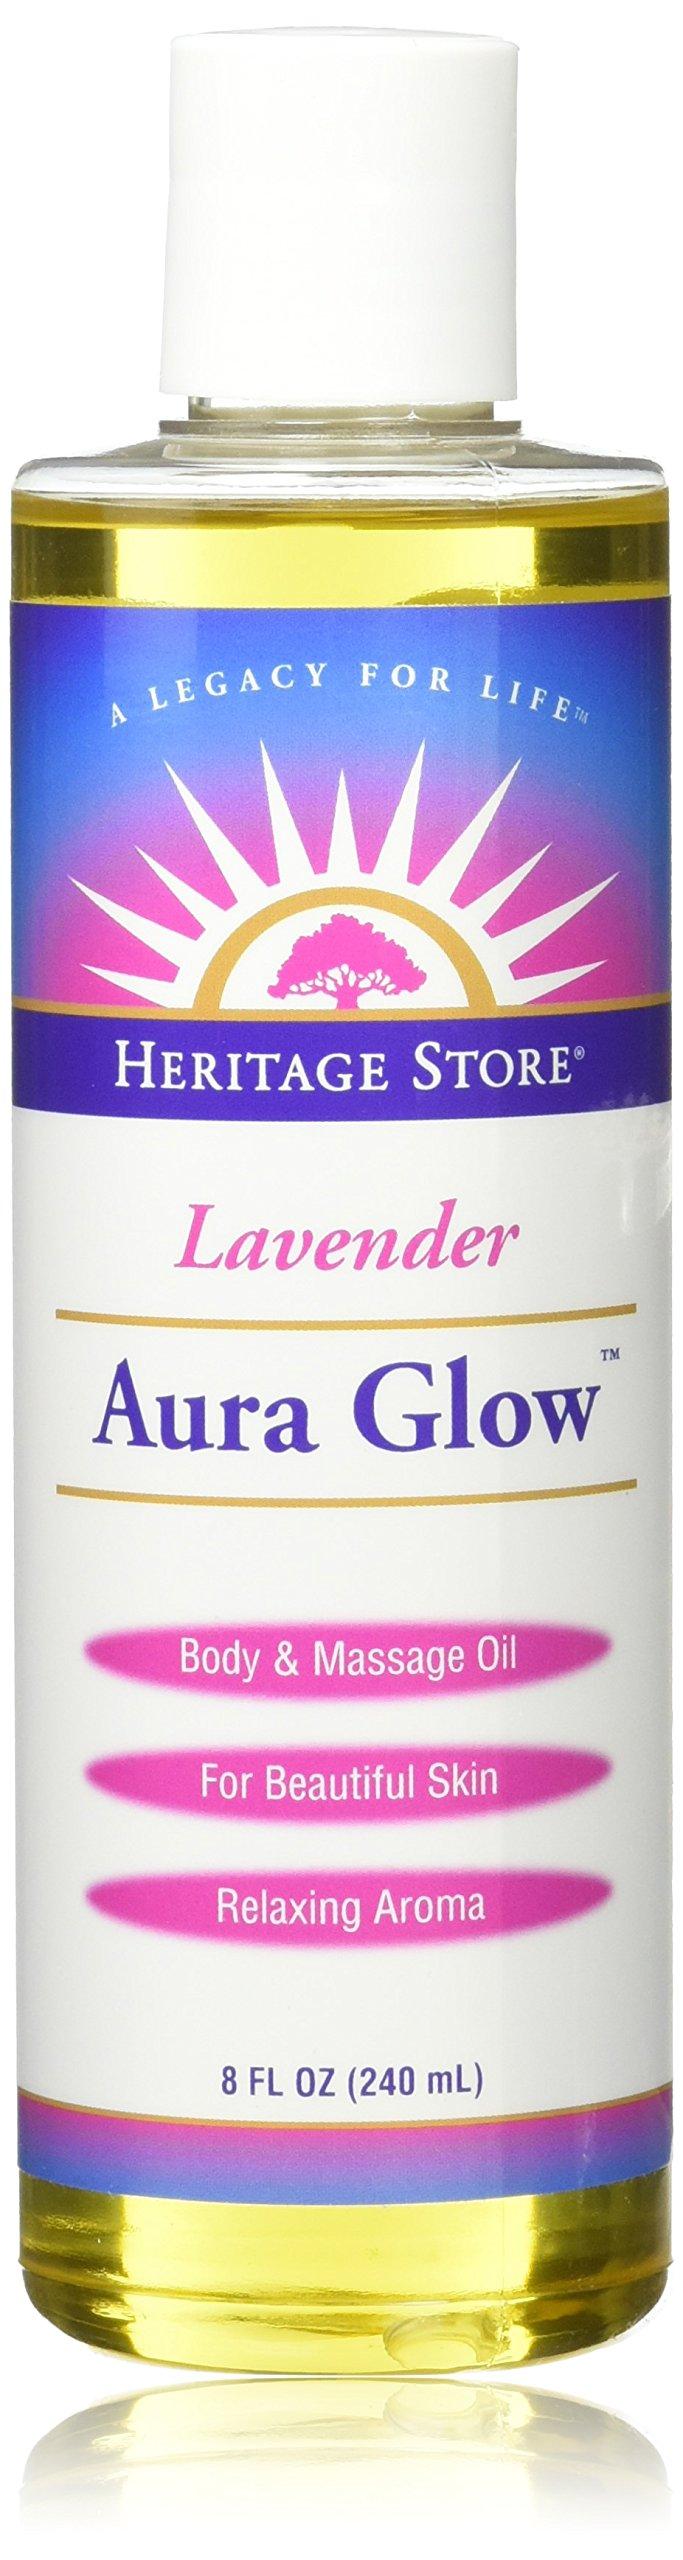 Heritage Products Coconut Aura Glow, 8 Oz Badger - Lip Balm Stick Highland Mint - 0.15 oz. (pack of 4)